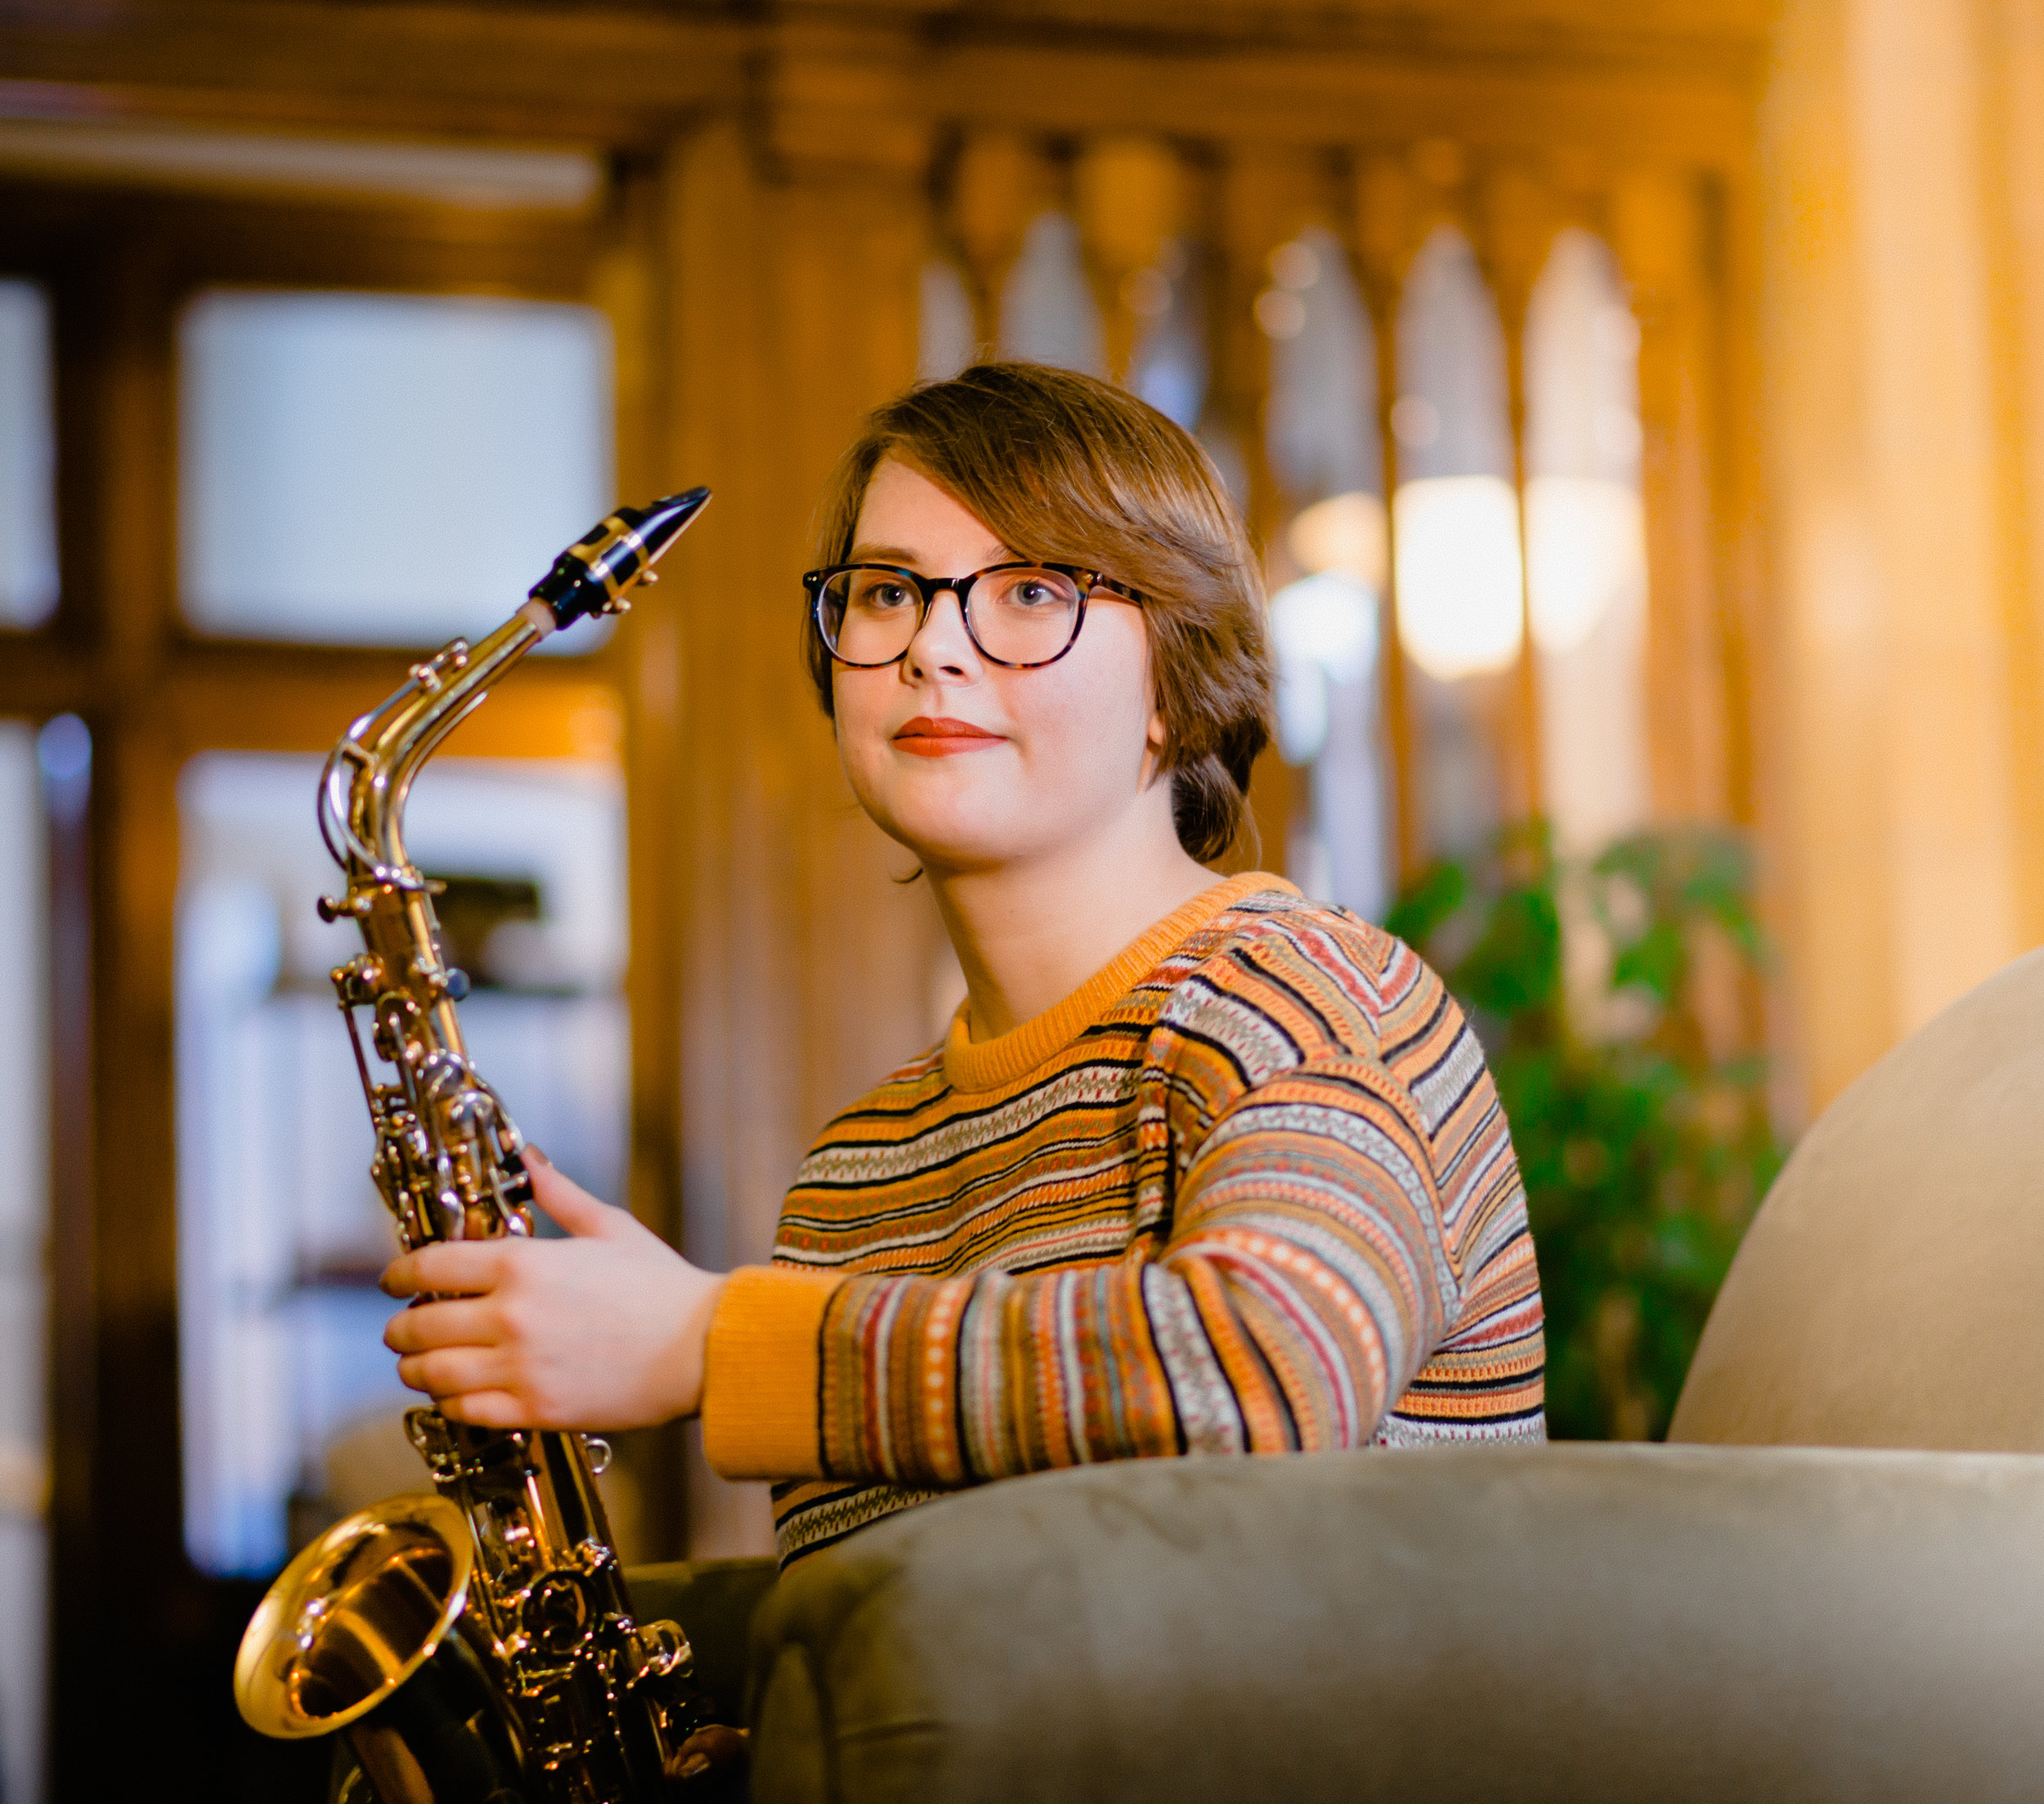 Gabby on the Sax-1.jpg